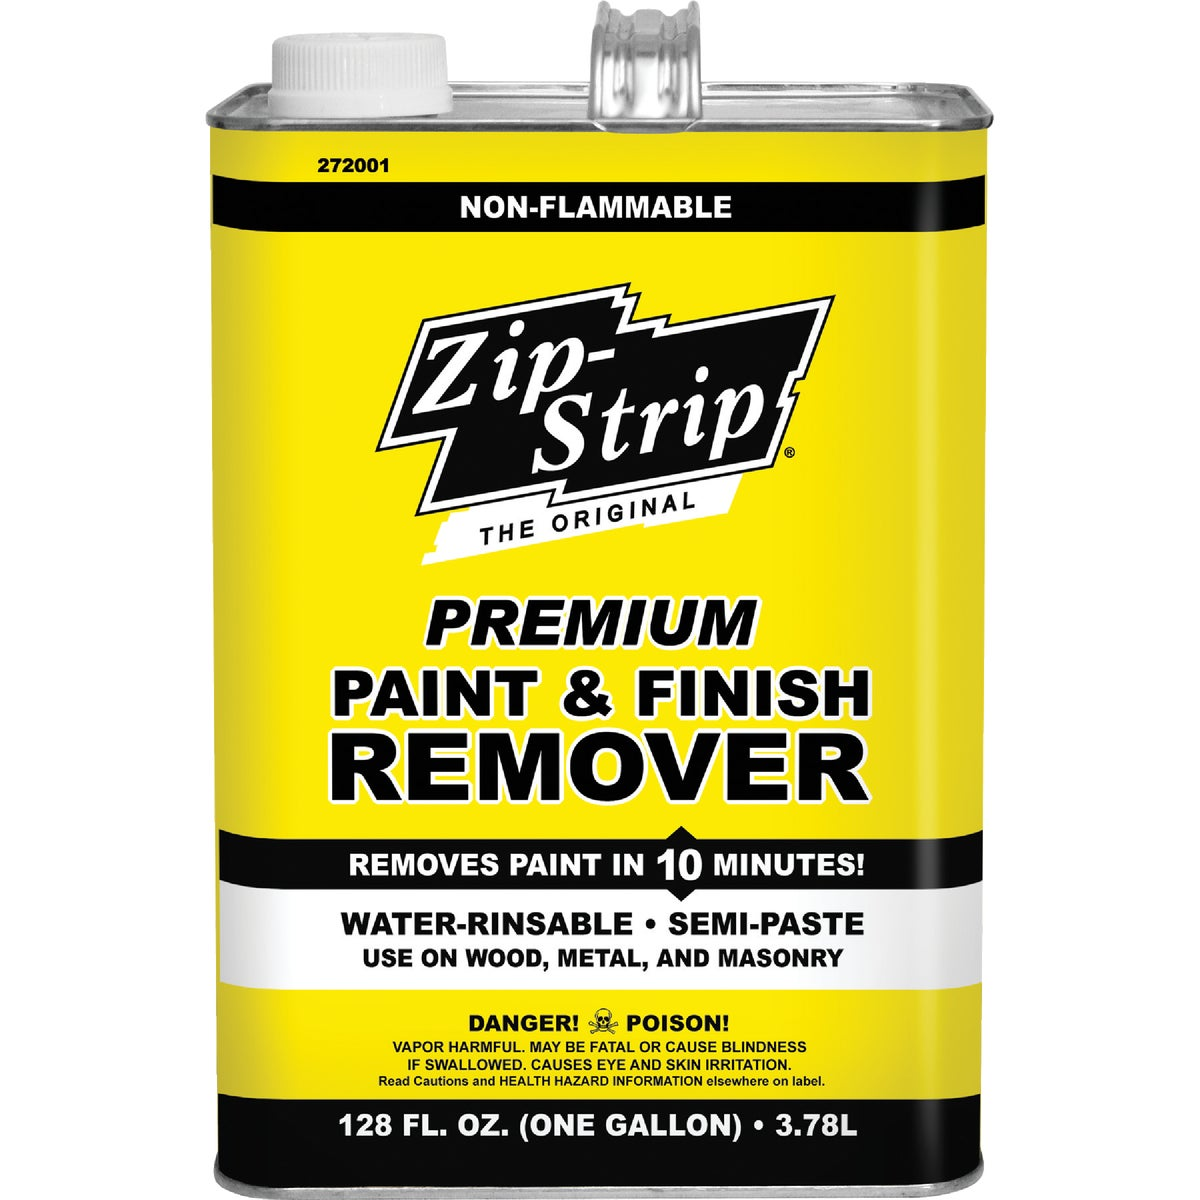 Absolute Coatings ZIP STRIP PAINT REMOVER 272001